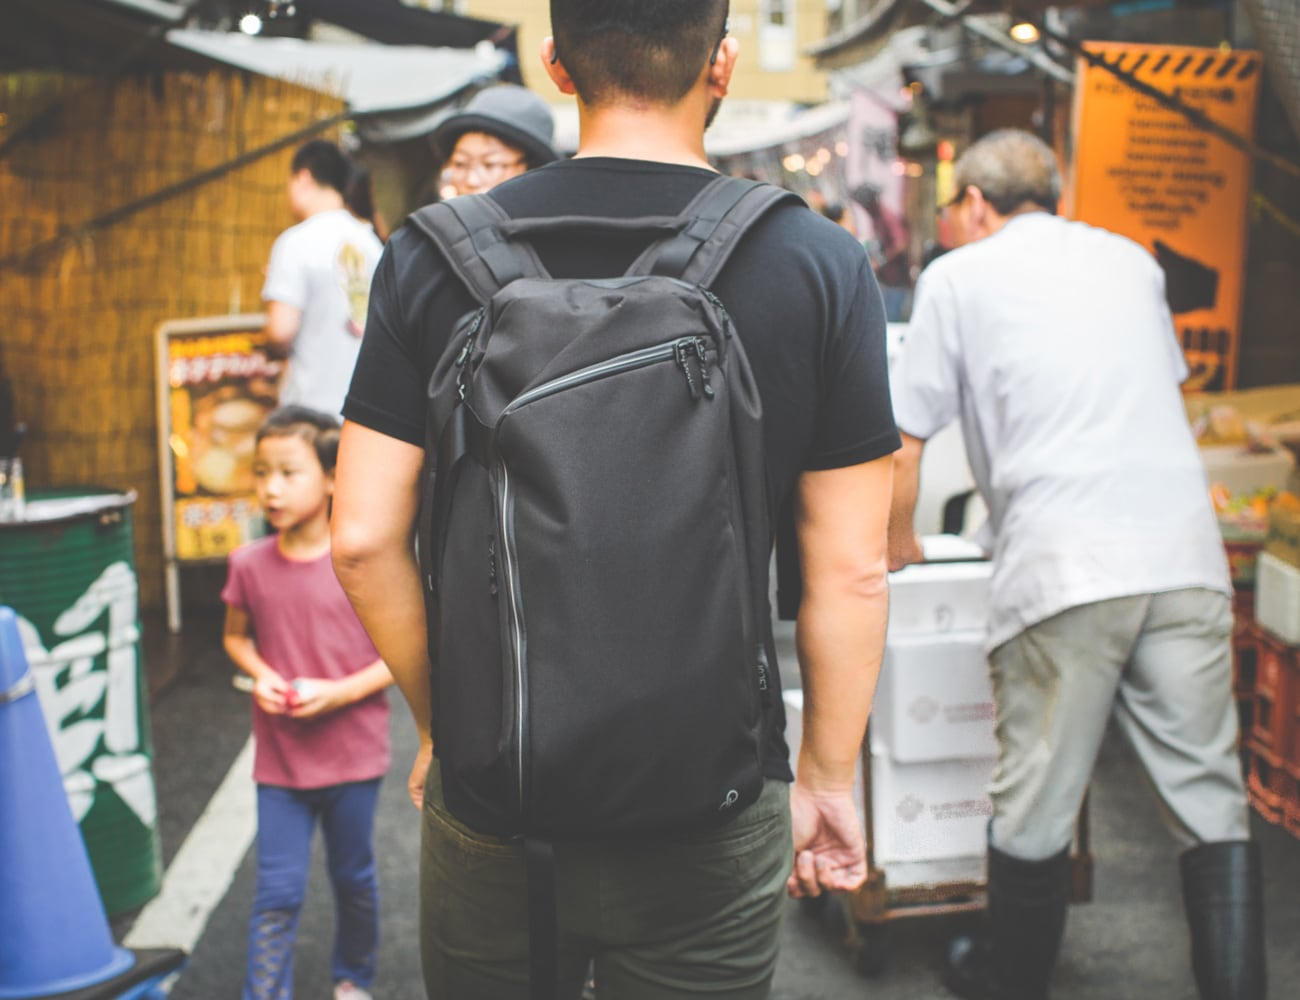 DayPac Transformable Everyday Backpack